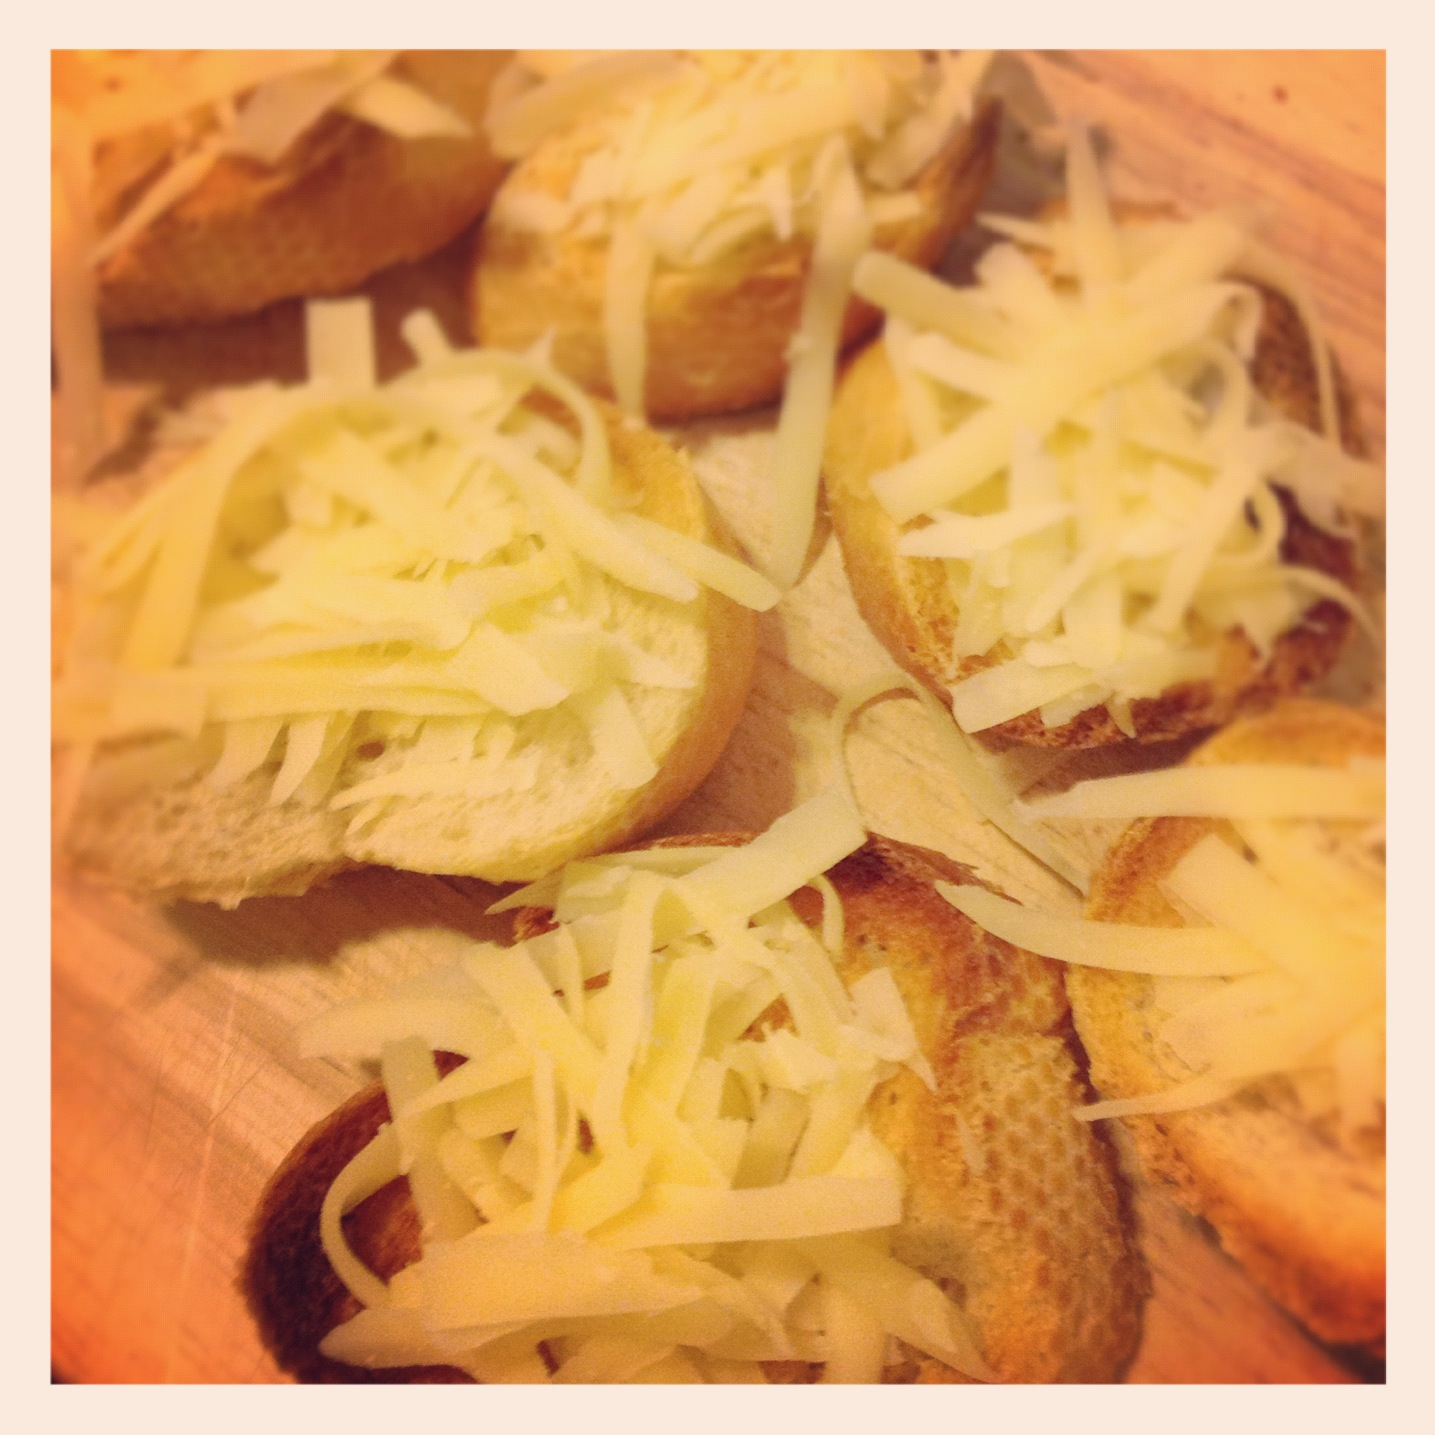 <br />Toast the bread slices with the Gruyere for a few minutes and put them in the bottom of the bowls, which will go in the oven